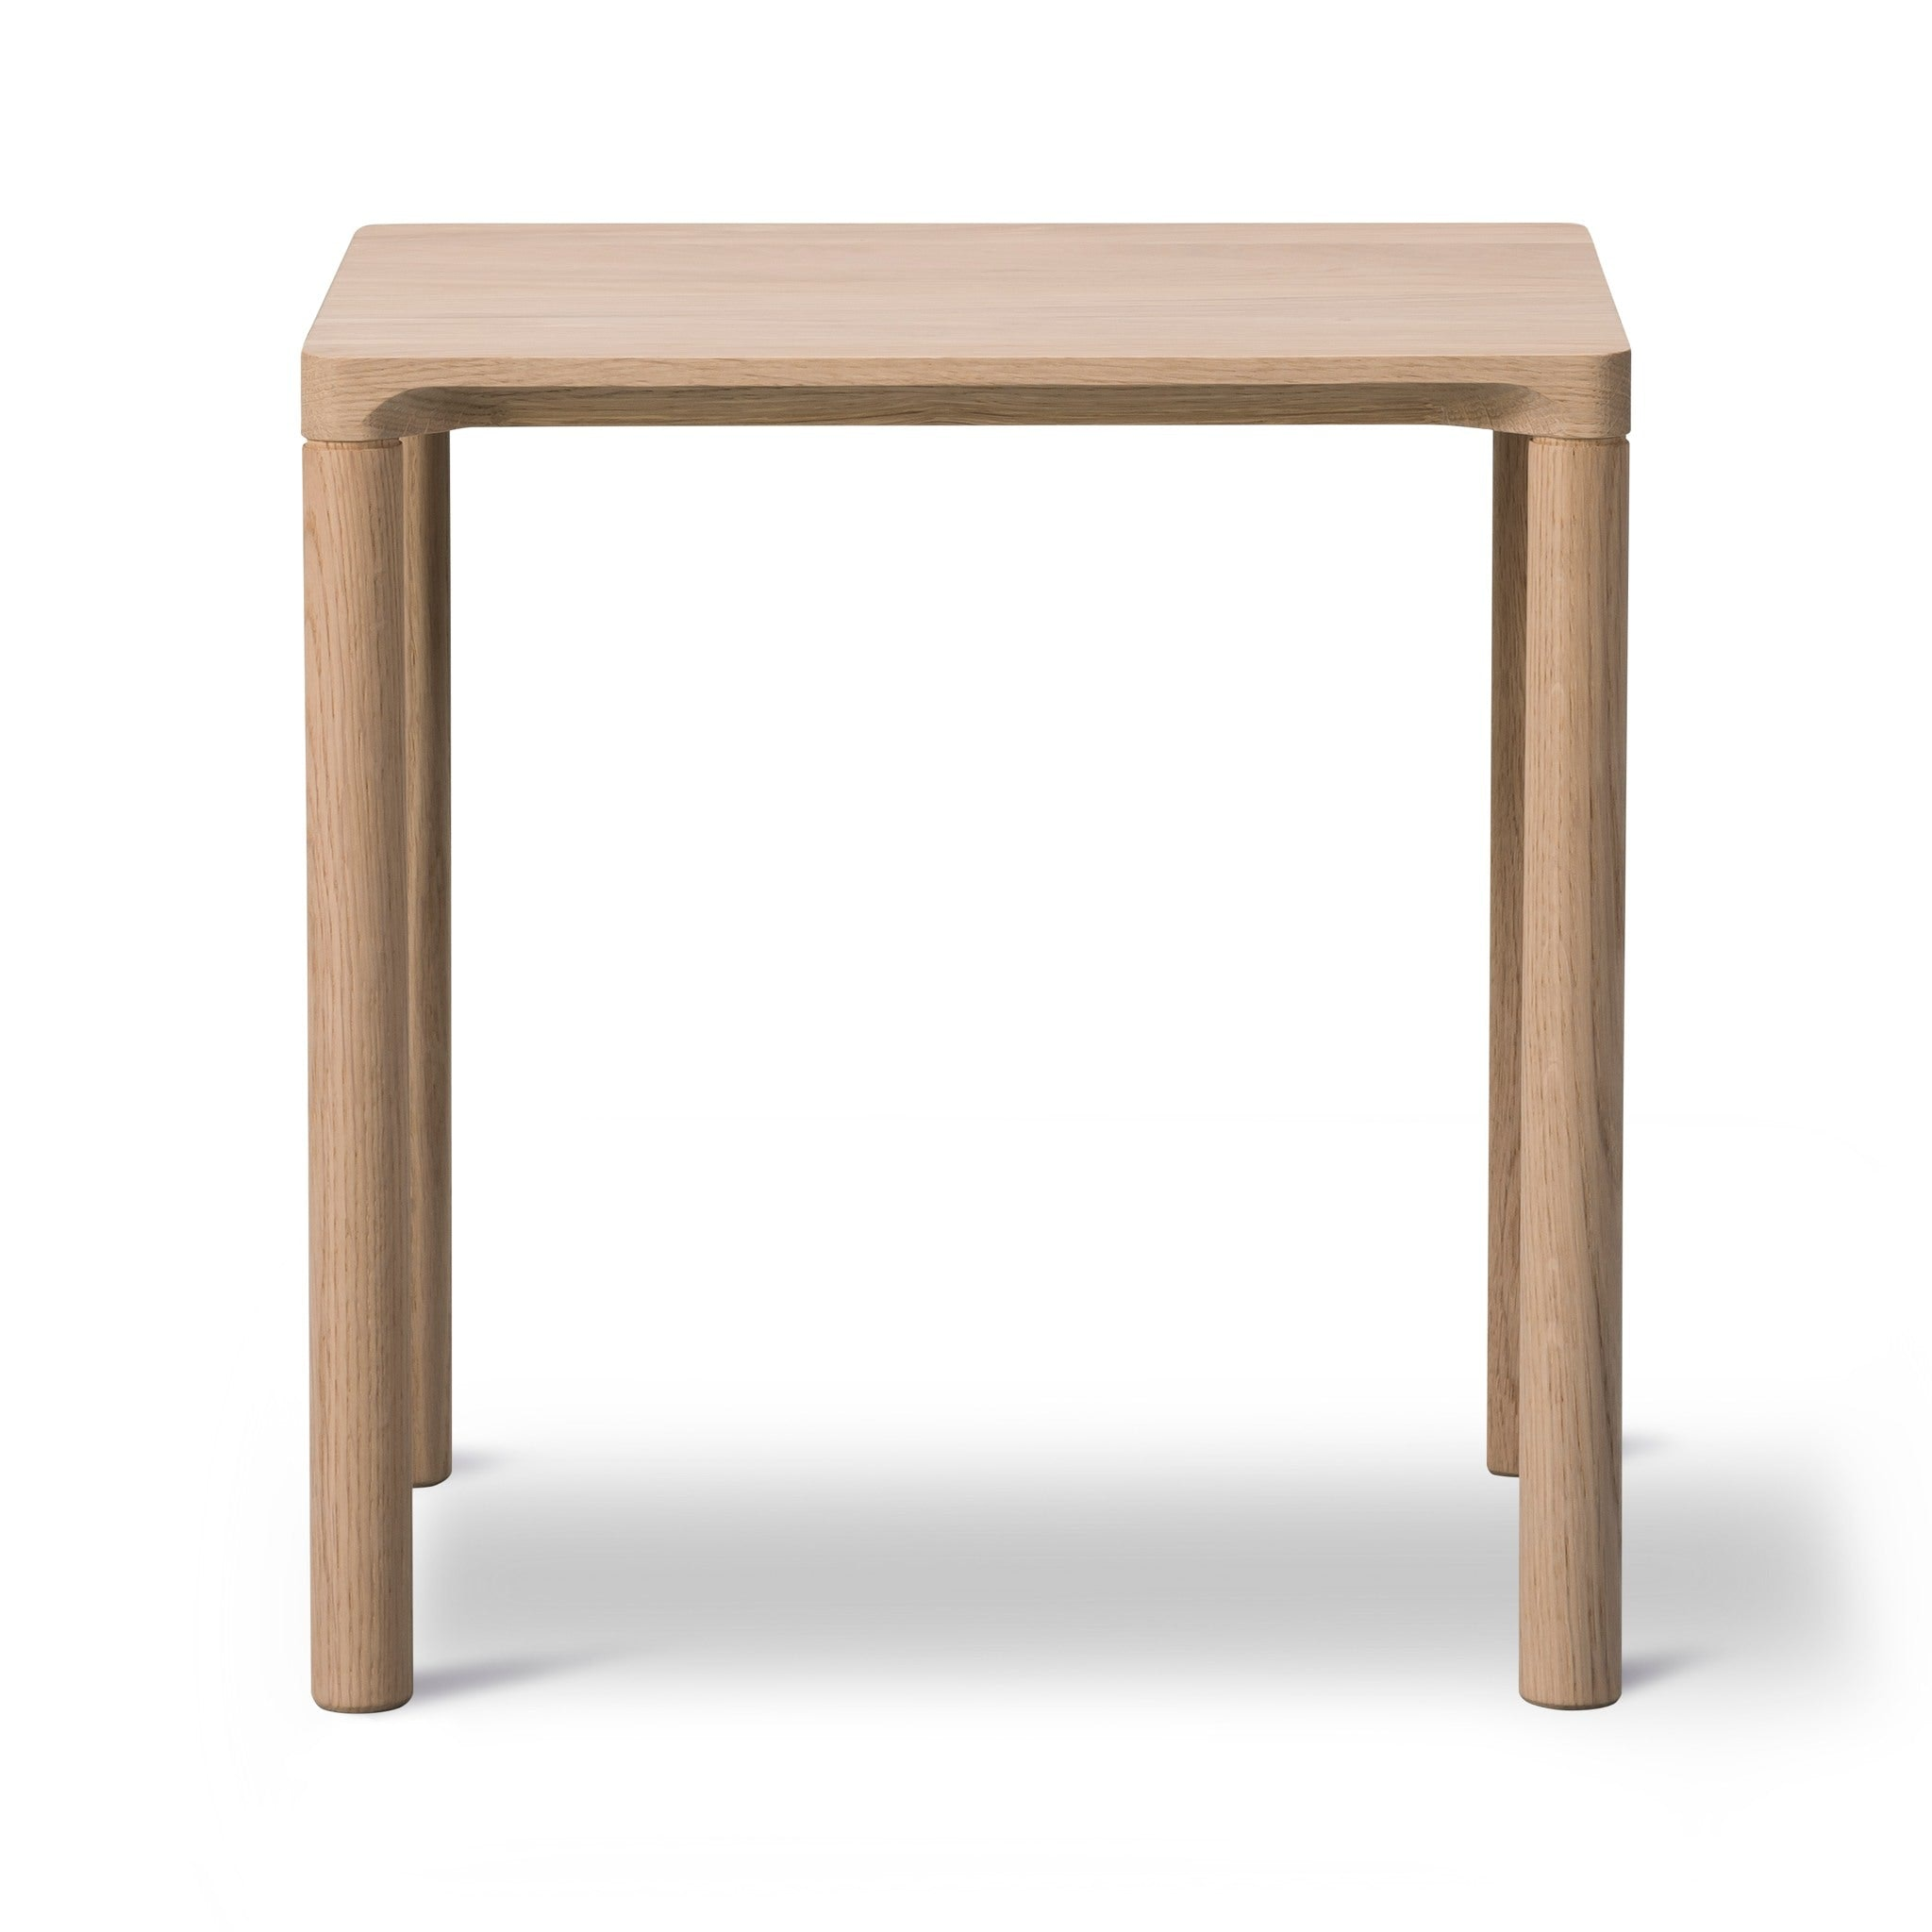 Piloti Table by Fredericia